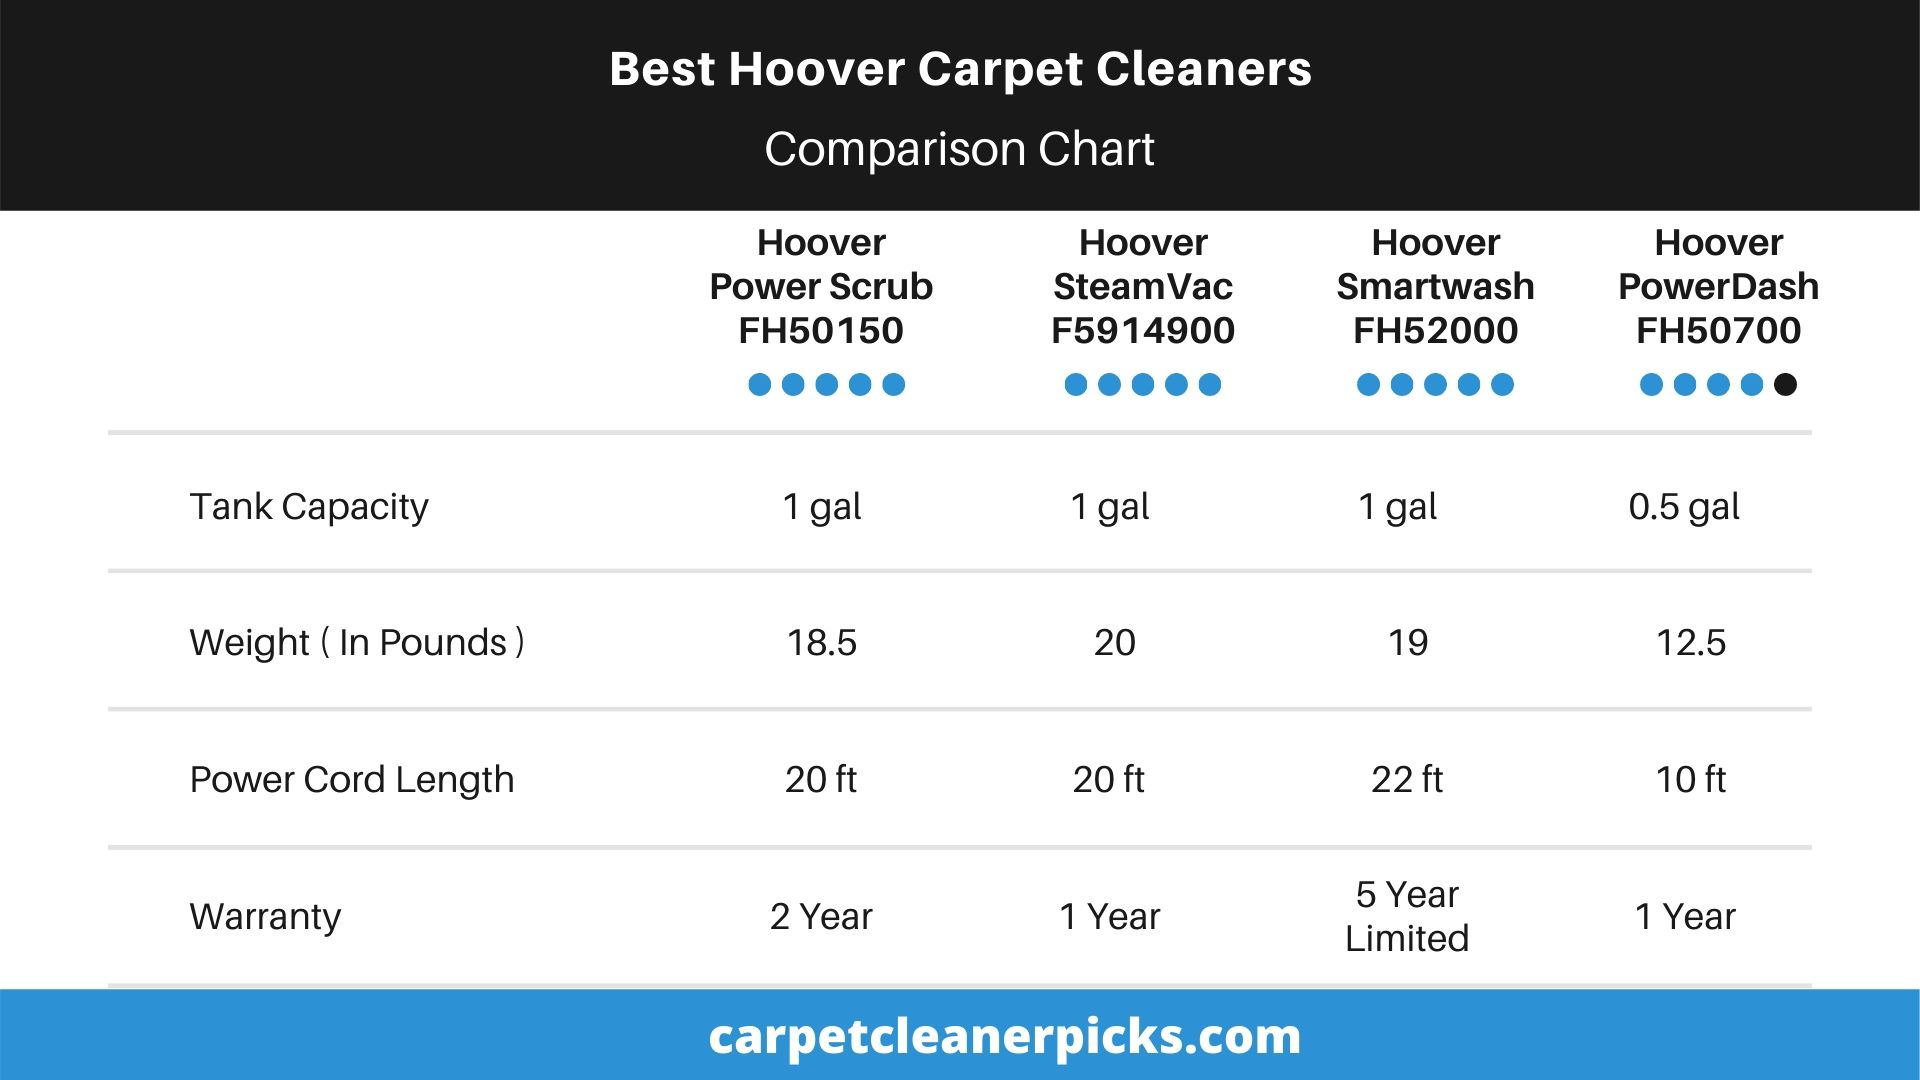 Hoover Carpet Cleaners Comparison Chart